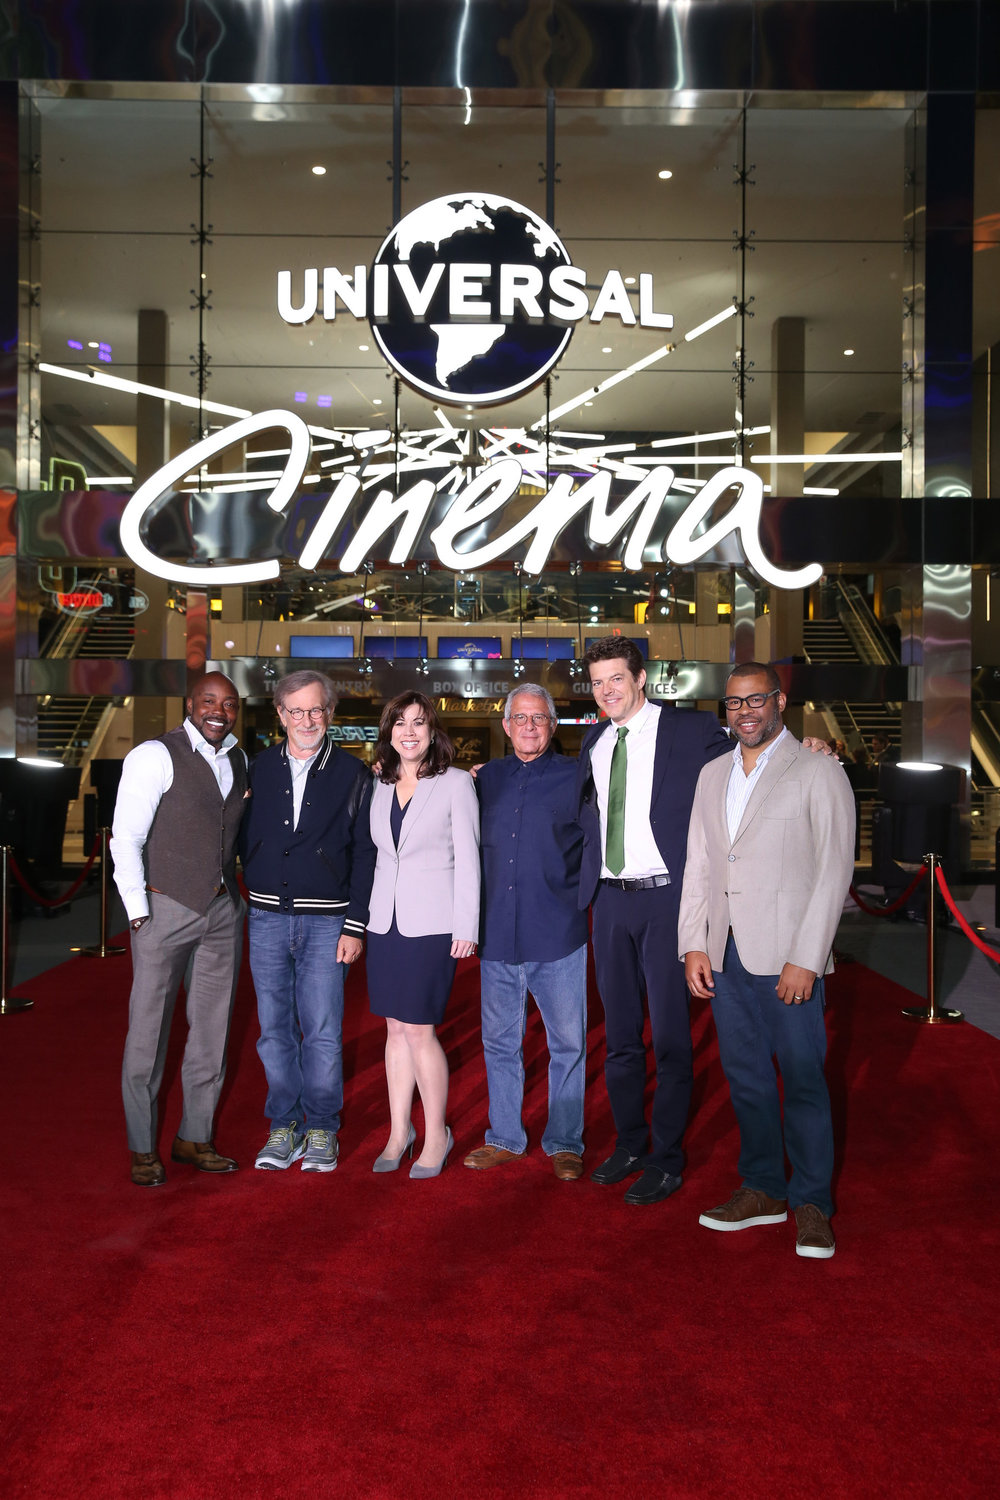 NBCUniversal Vice Chairman Ron Meyer and acclaimed filmmakers Steven Spielberg, Jordan Peele, Will Packer and Jason Blum helped celebrate the grand opening of Universal CityWalk's all-new Universal Cinema in Los Angeles on Thursday, April 20, 2017.